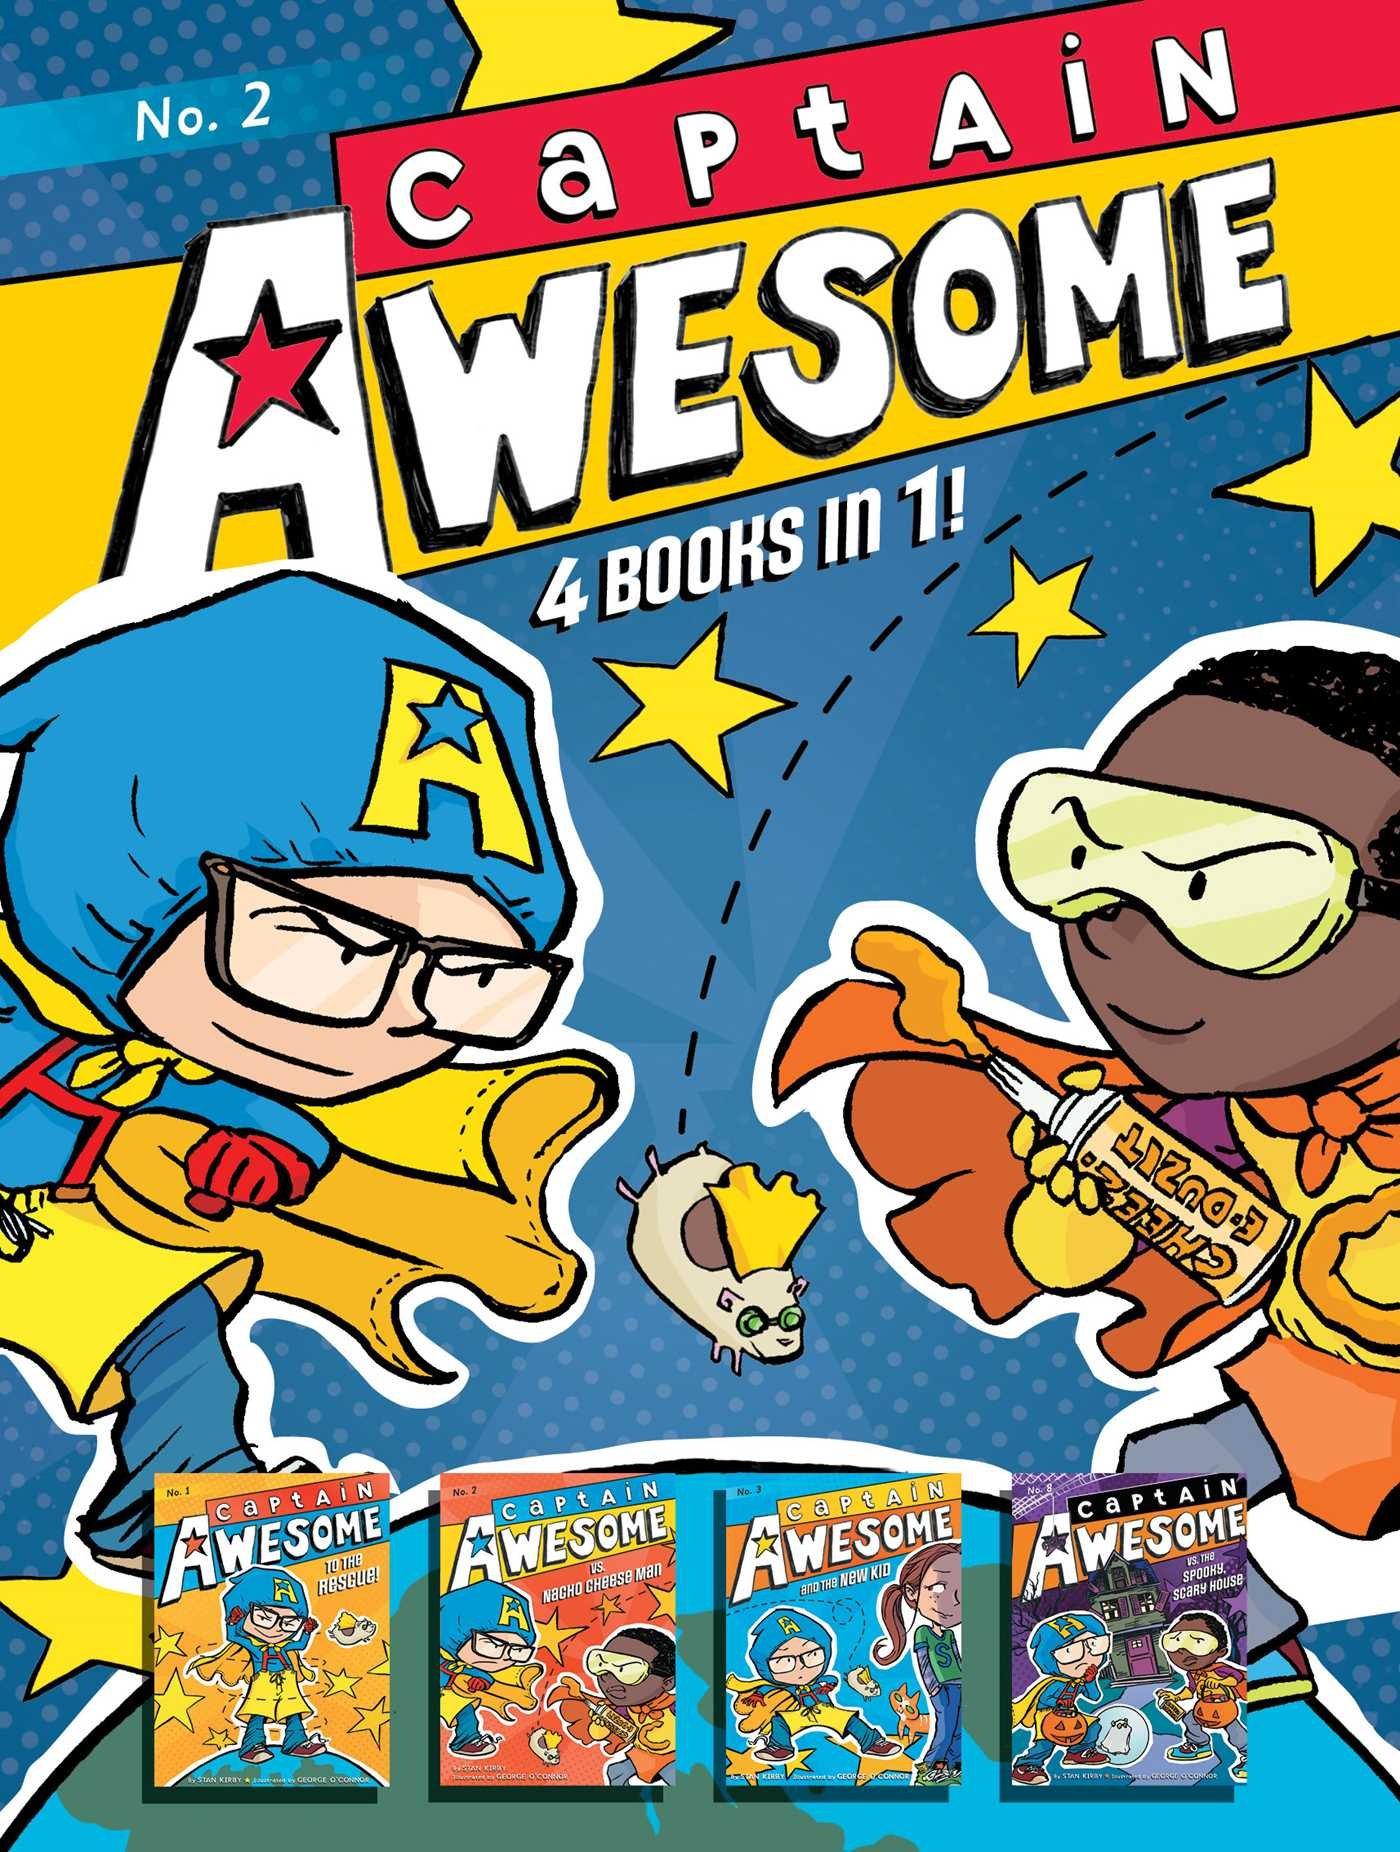 Captain Awesome 4 Books in 1! No. 2: Captain Awesome to the Rescue, Captain Awesome vs. Nacho Cheese Man, Captain Awesome and the New Kid, Captain Awesome vs. the Spooky, Scary House by Little Simon